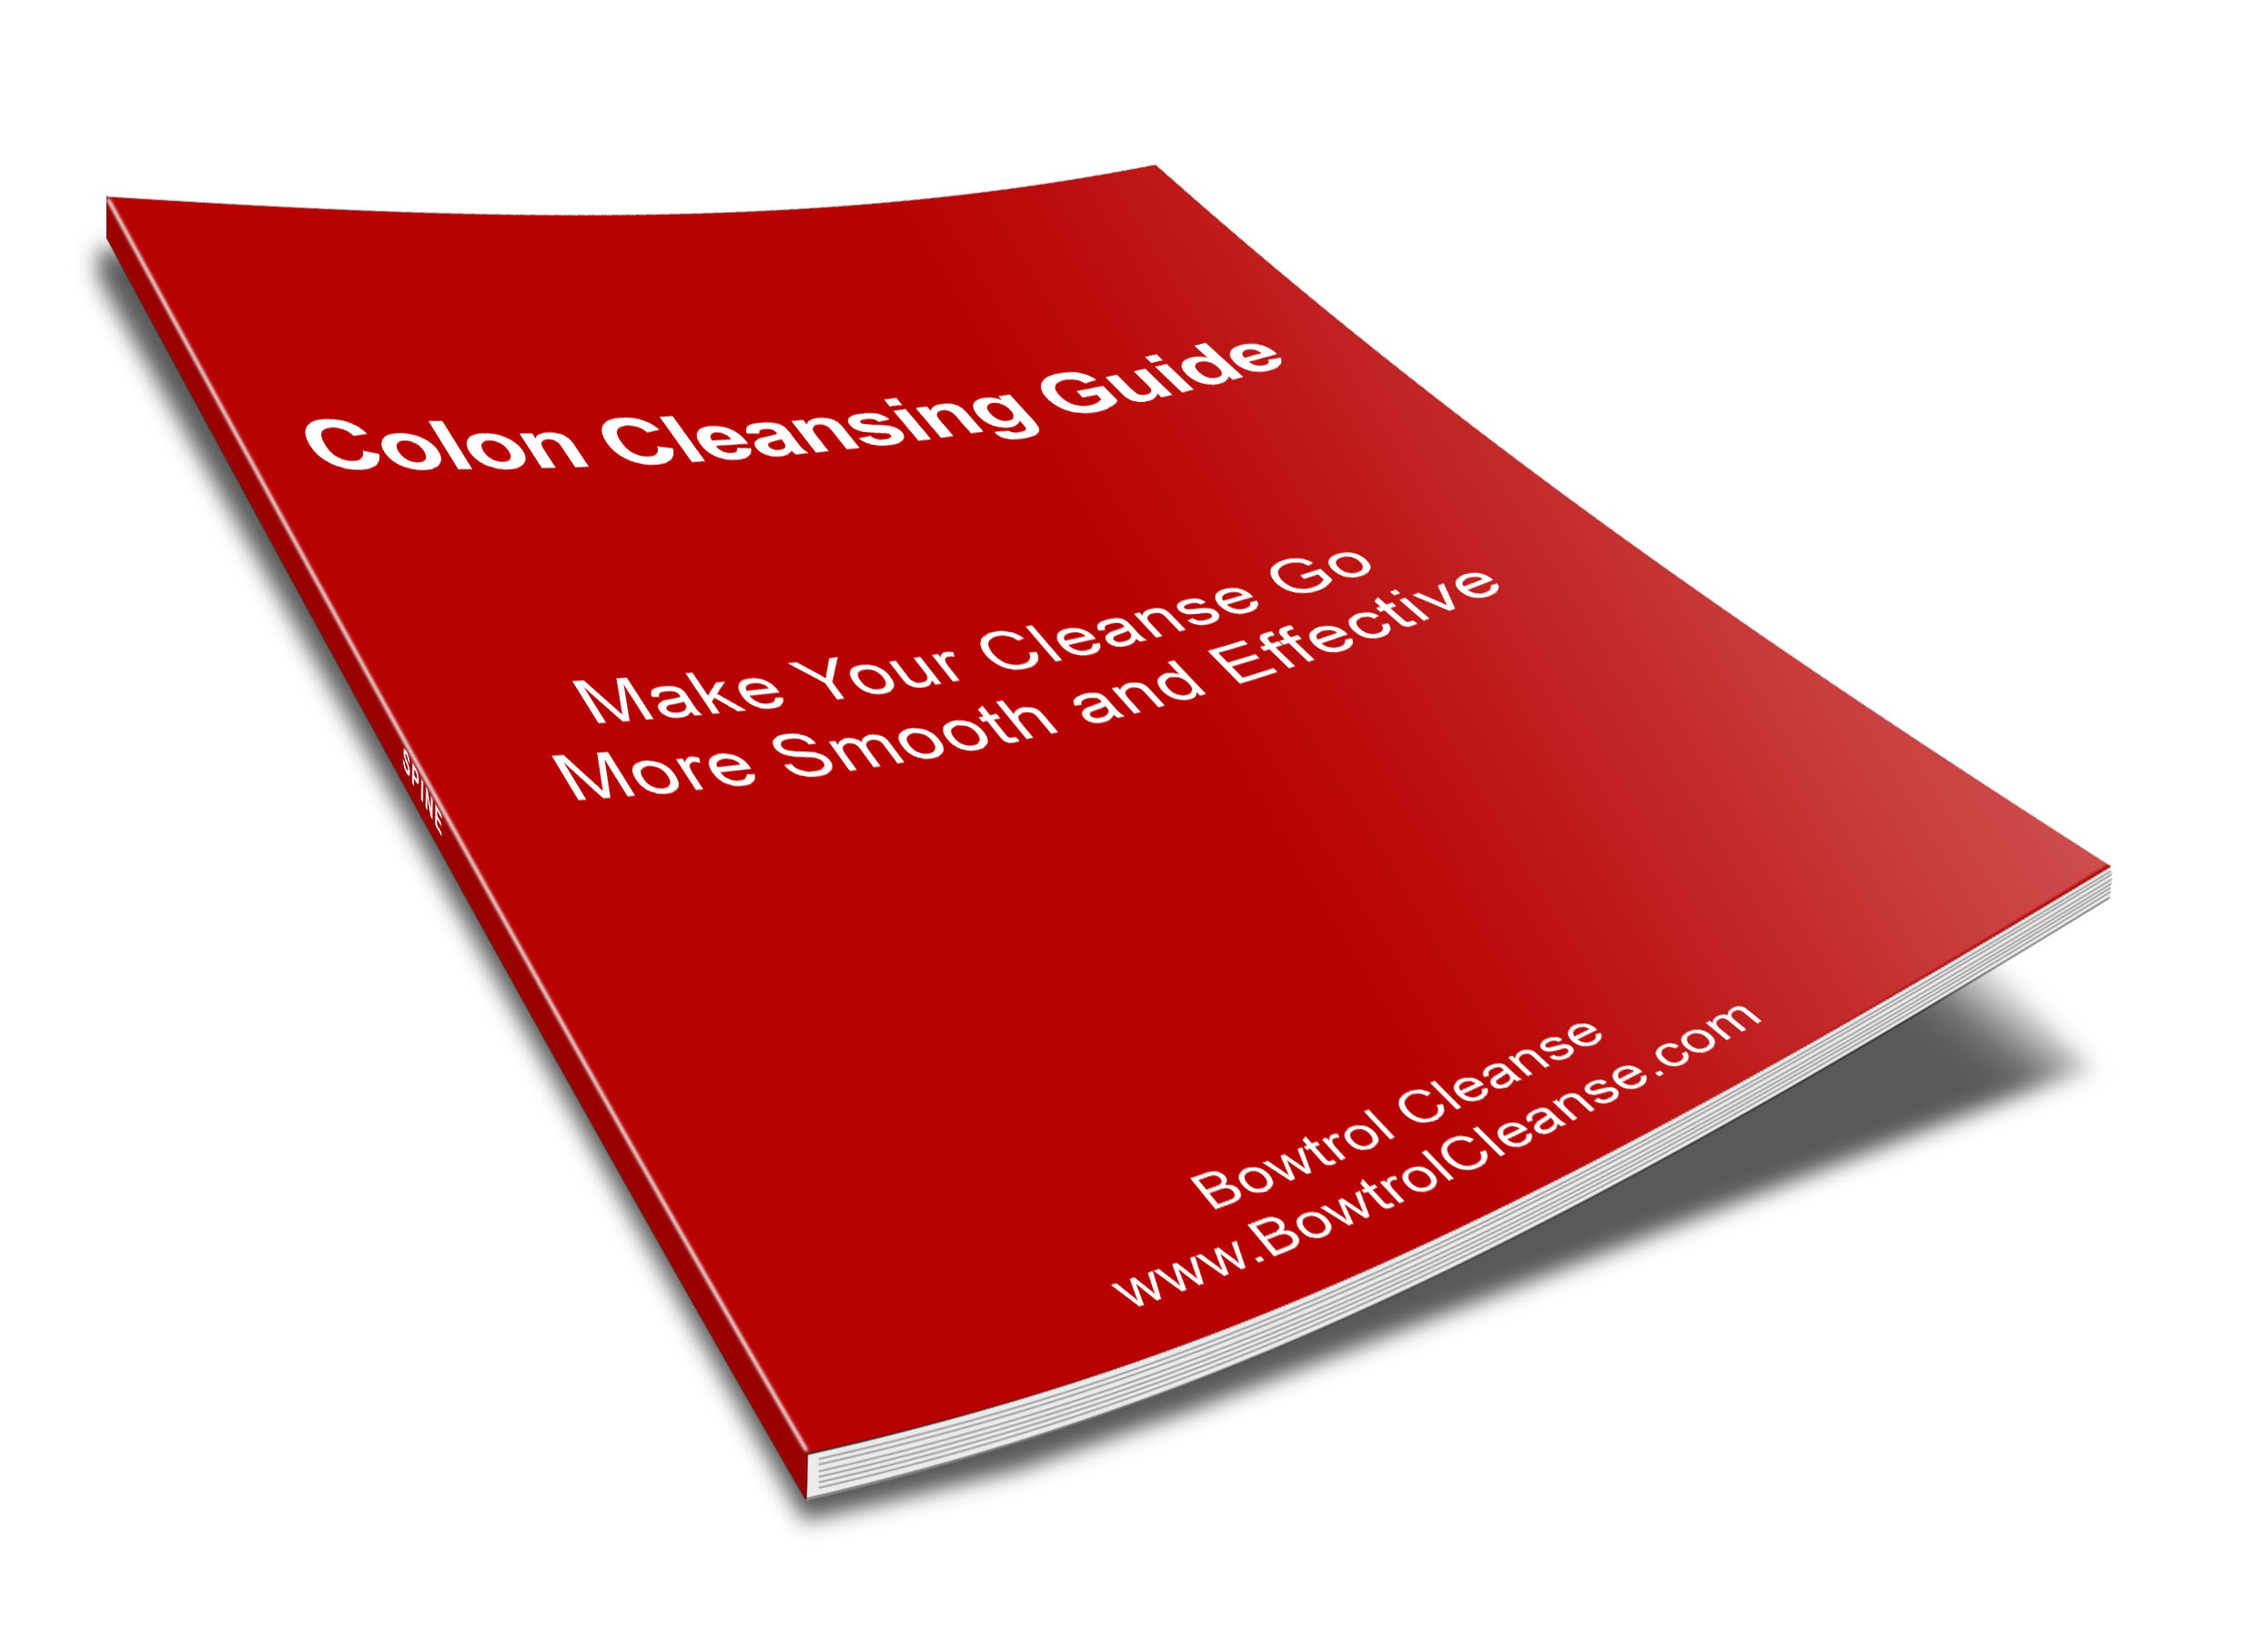 ColonCleanseGuide